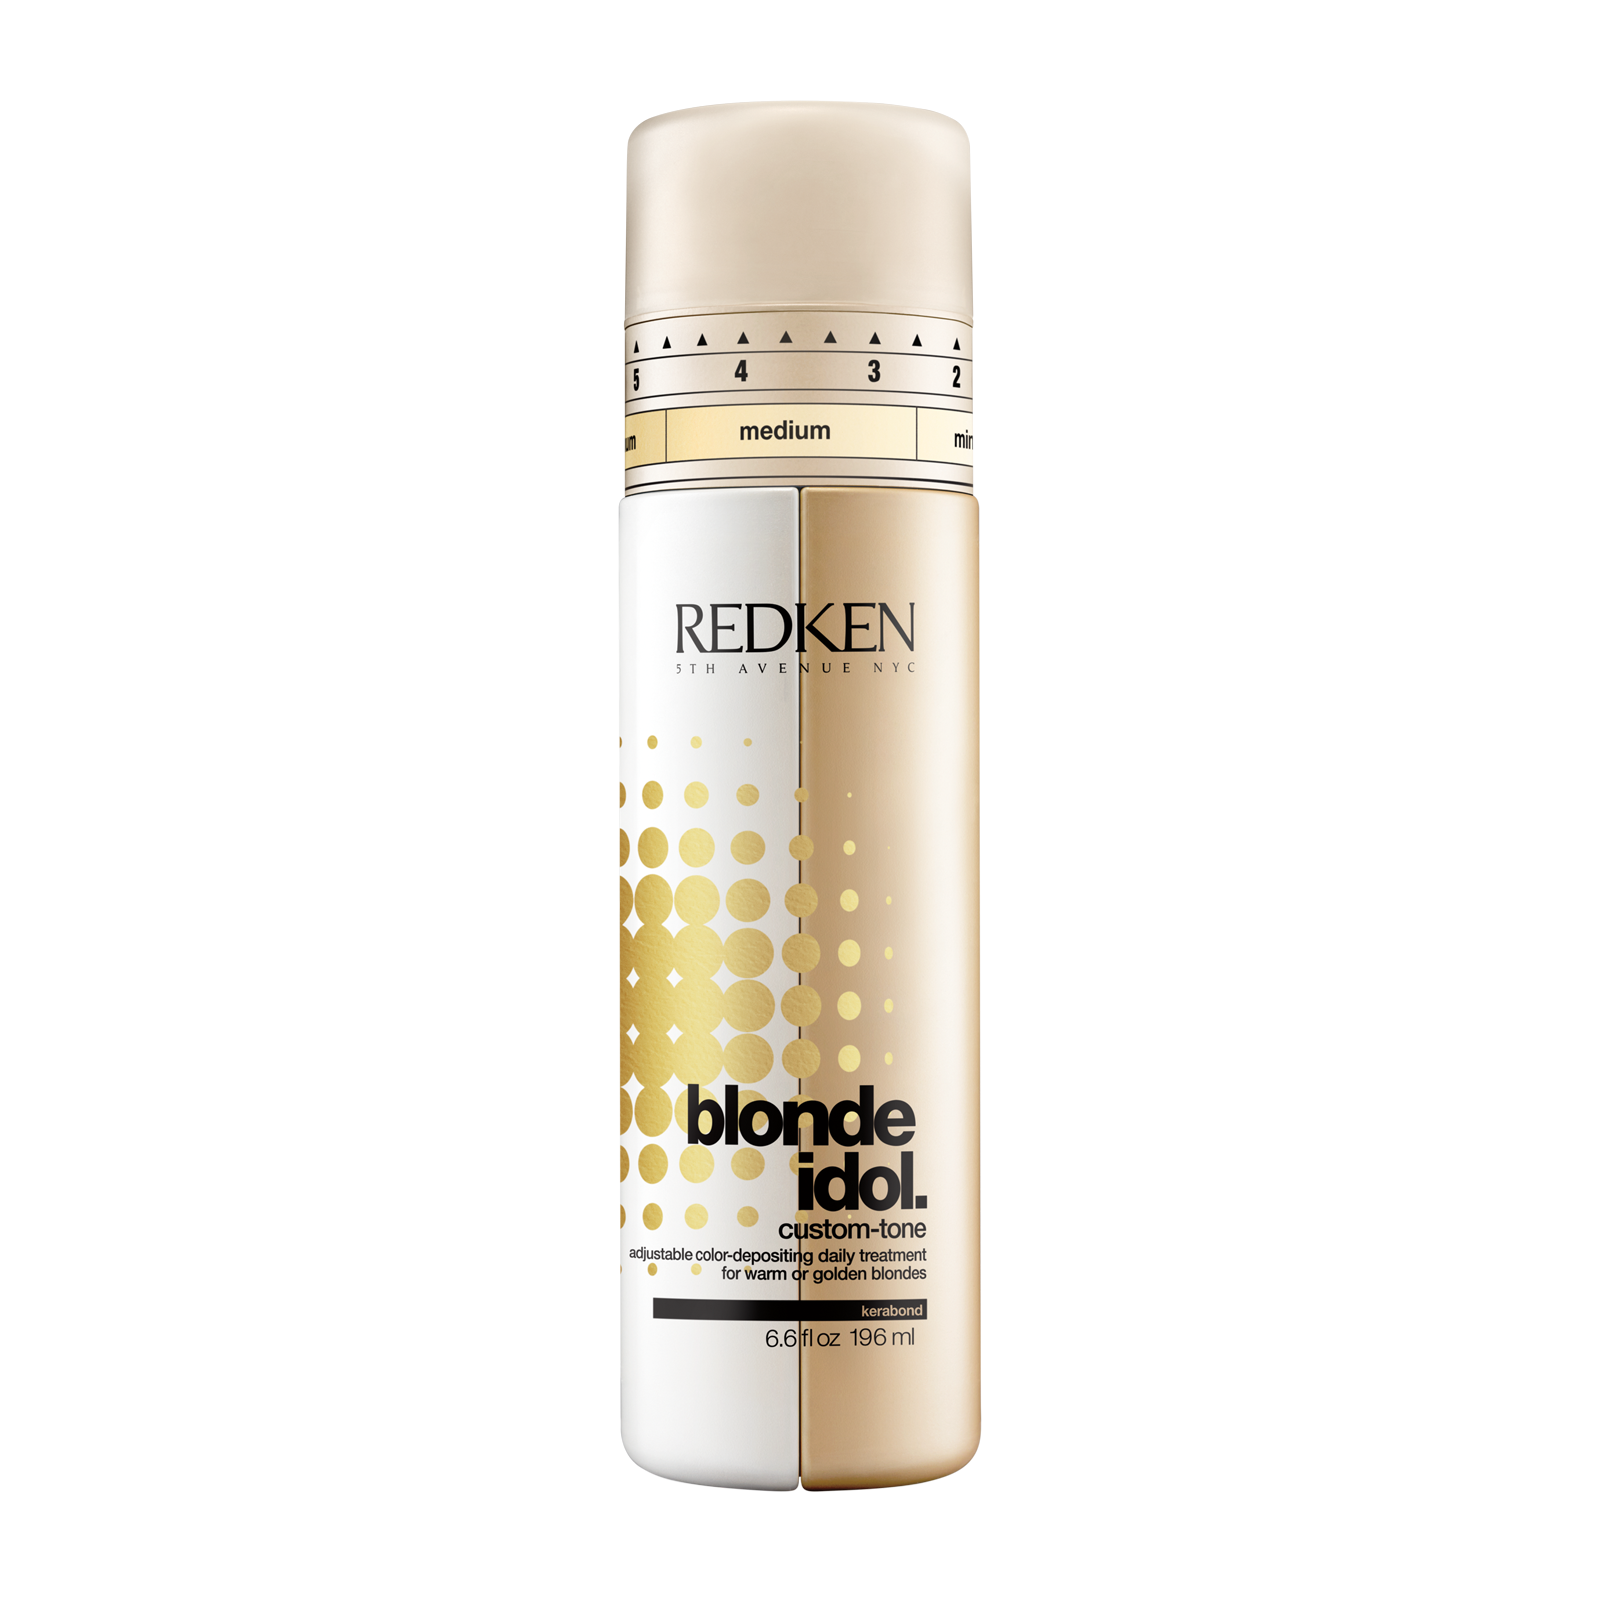 Redken blonde idol conditioner